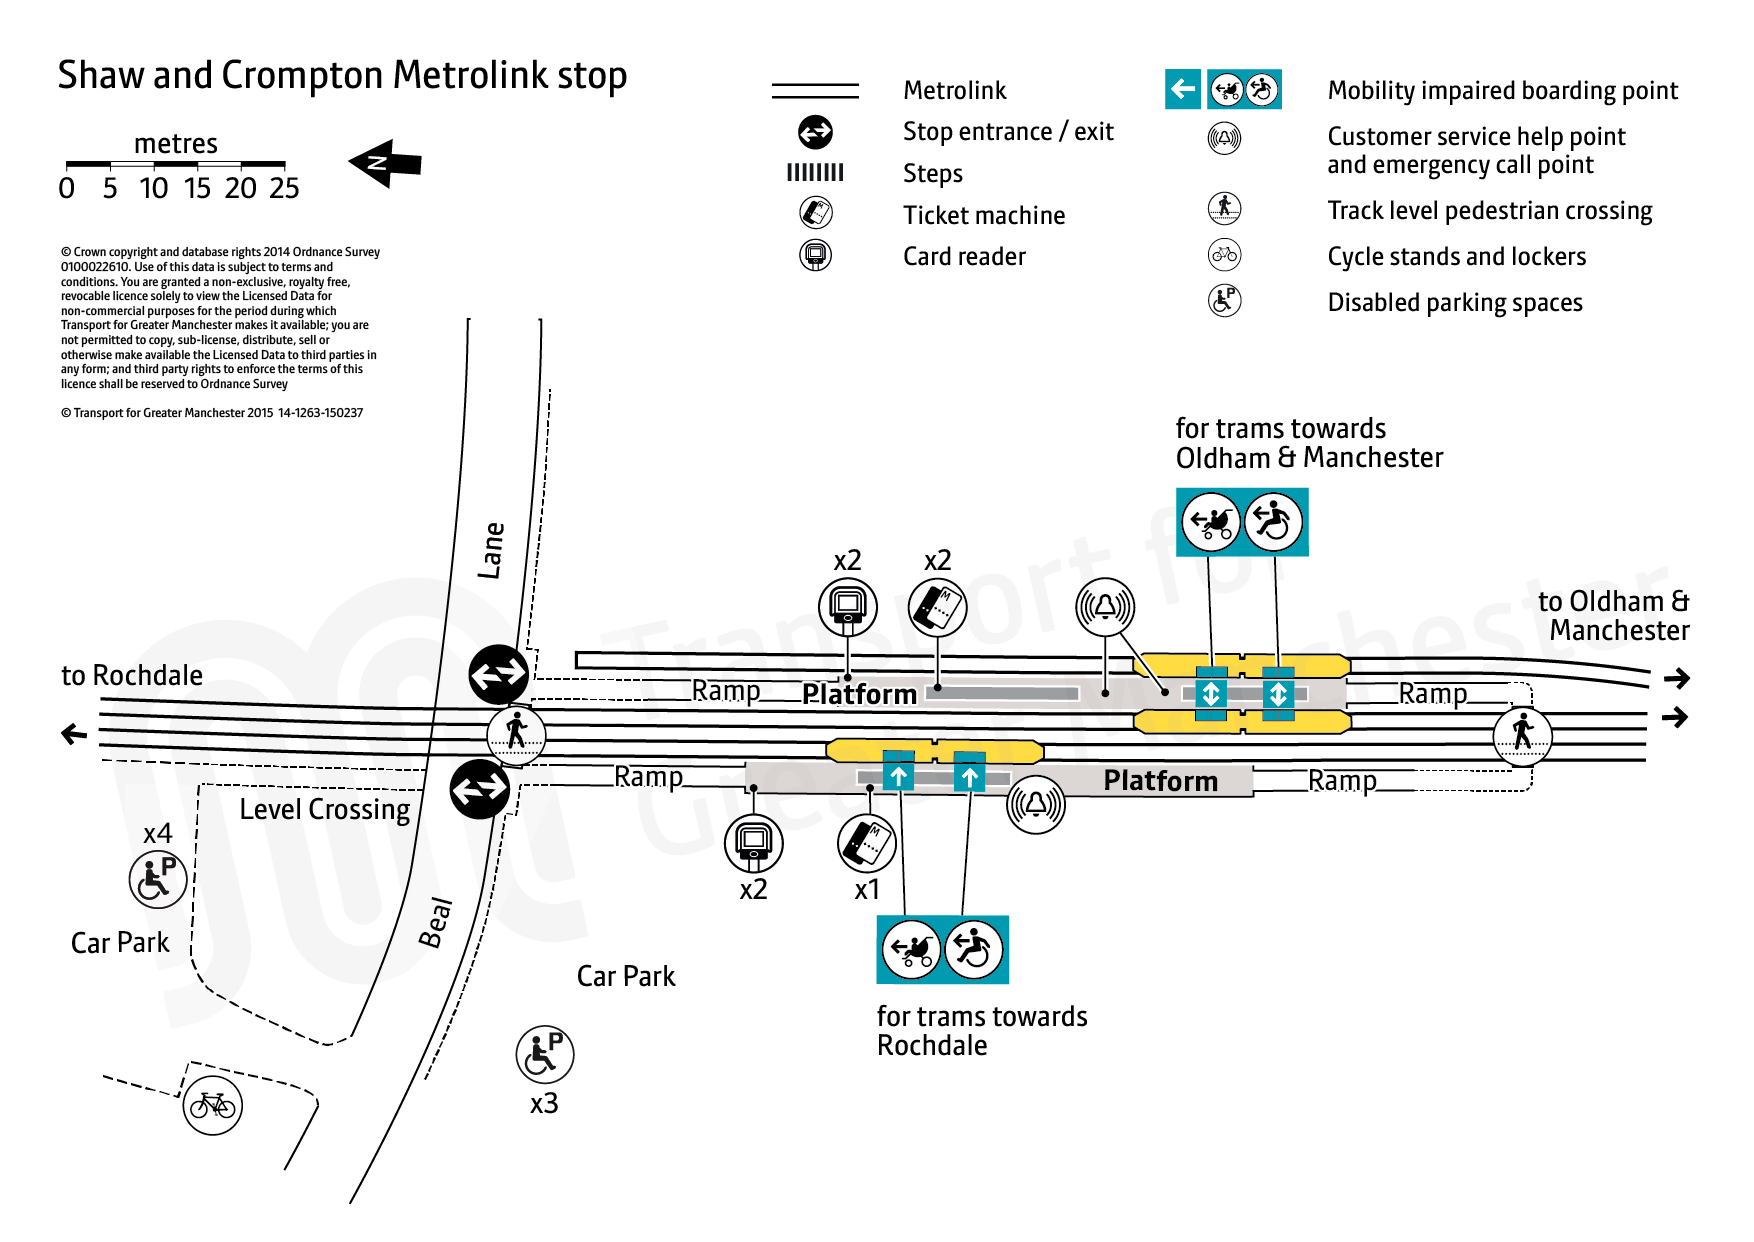 Stop map for Shaw and Crompton tram stop